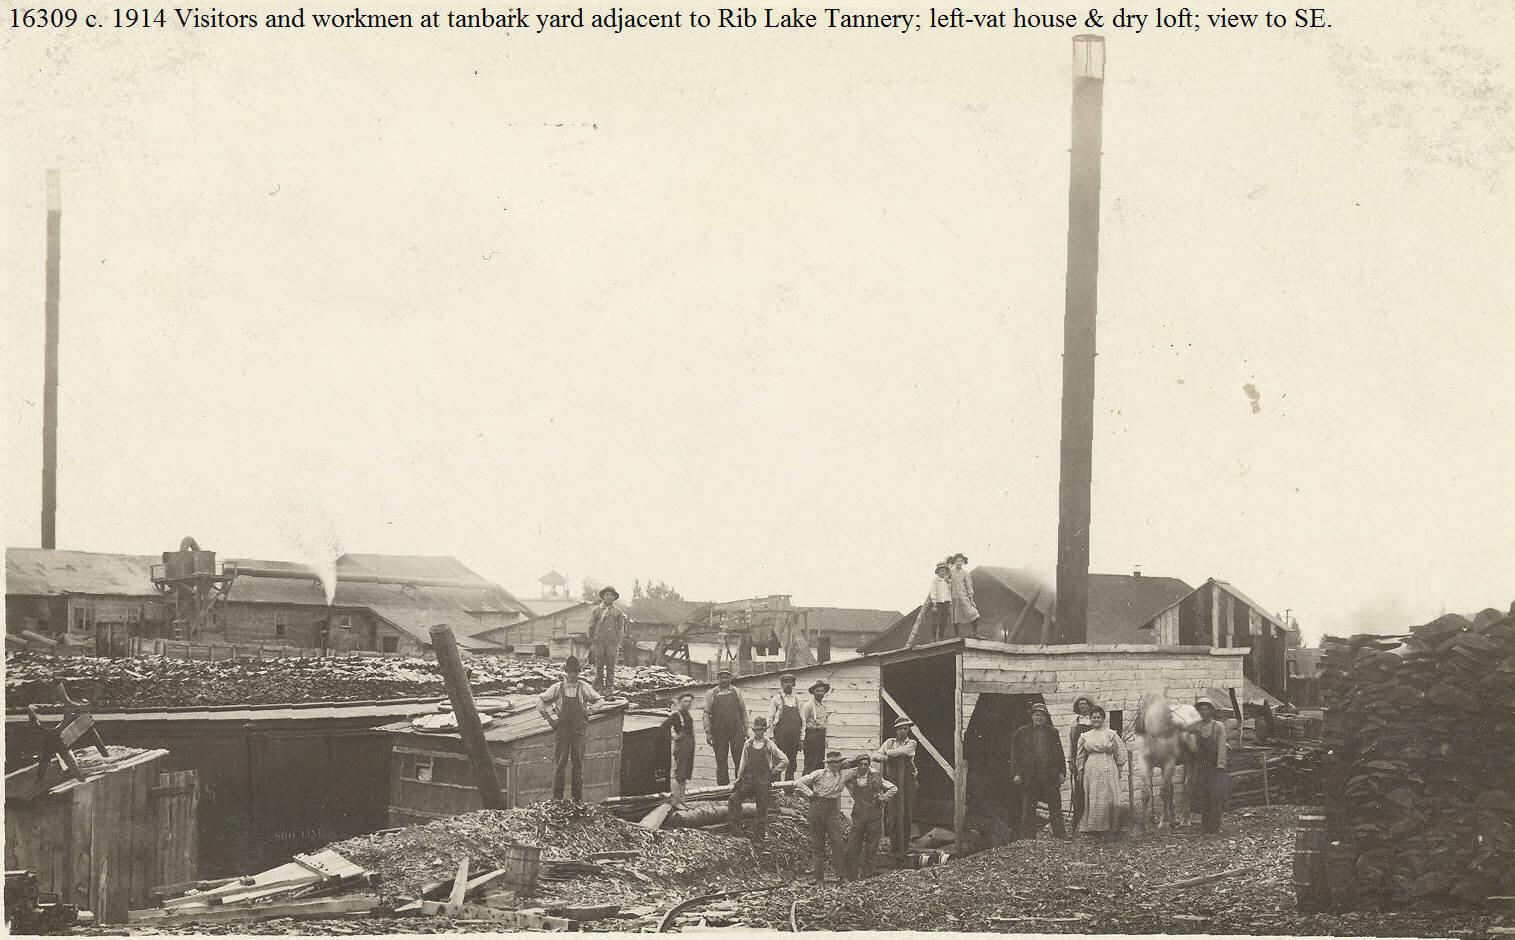 C:\Users\Robert P. Rusch\Desktop\II. RLHSoc\Documents & Photos-Scanned\Rib Lake History 16300-16399\16309 P. c. 1914 Rib Lake Tannery; right-tanbark; center-boiler house; left-vat house; view SW.jpg